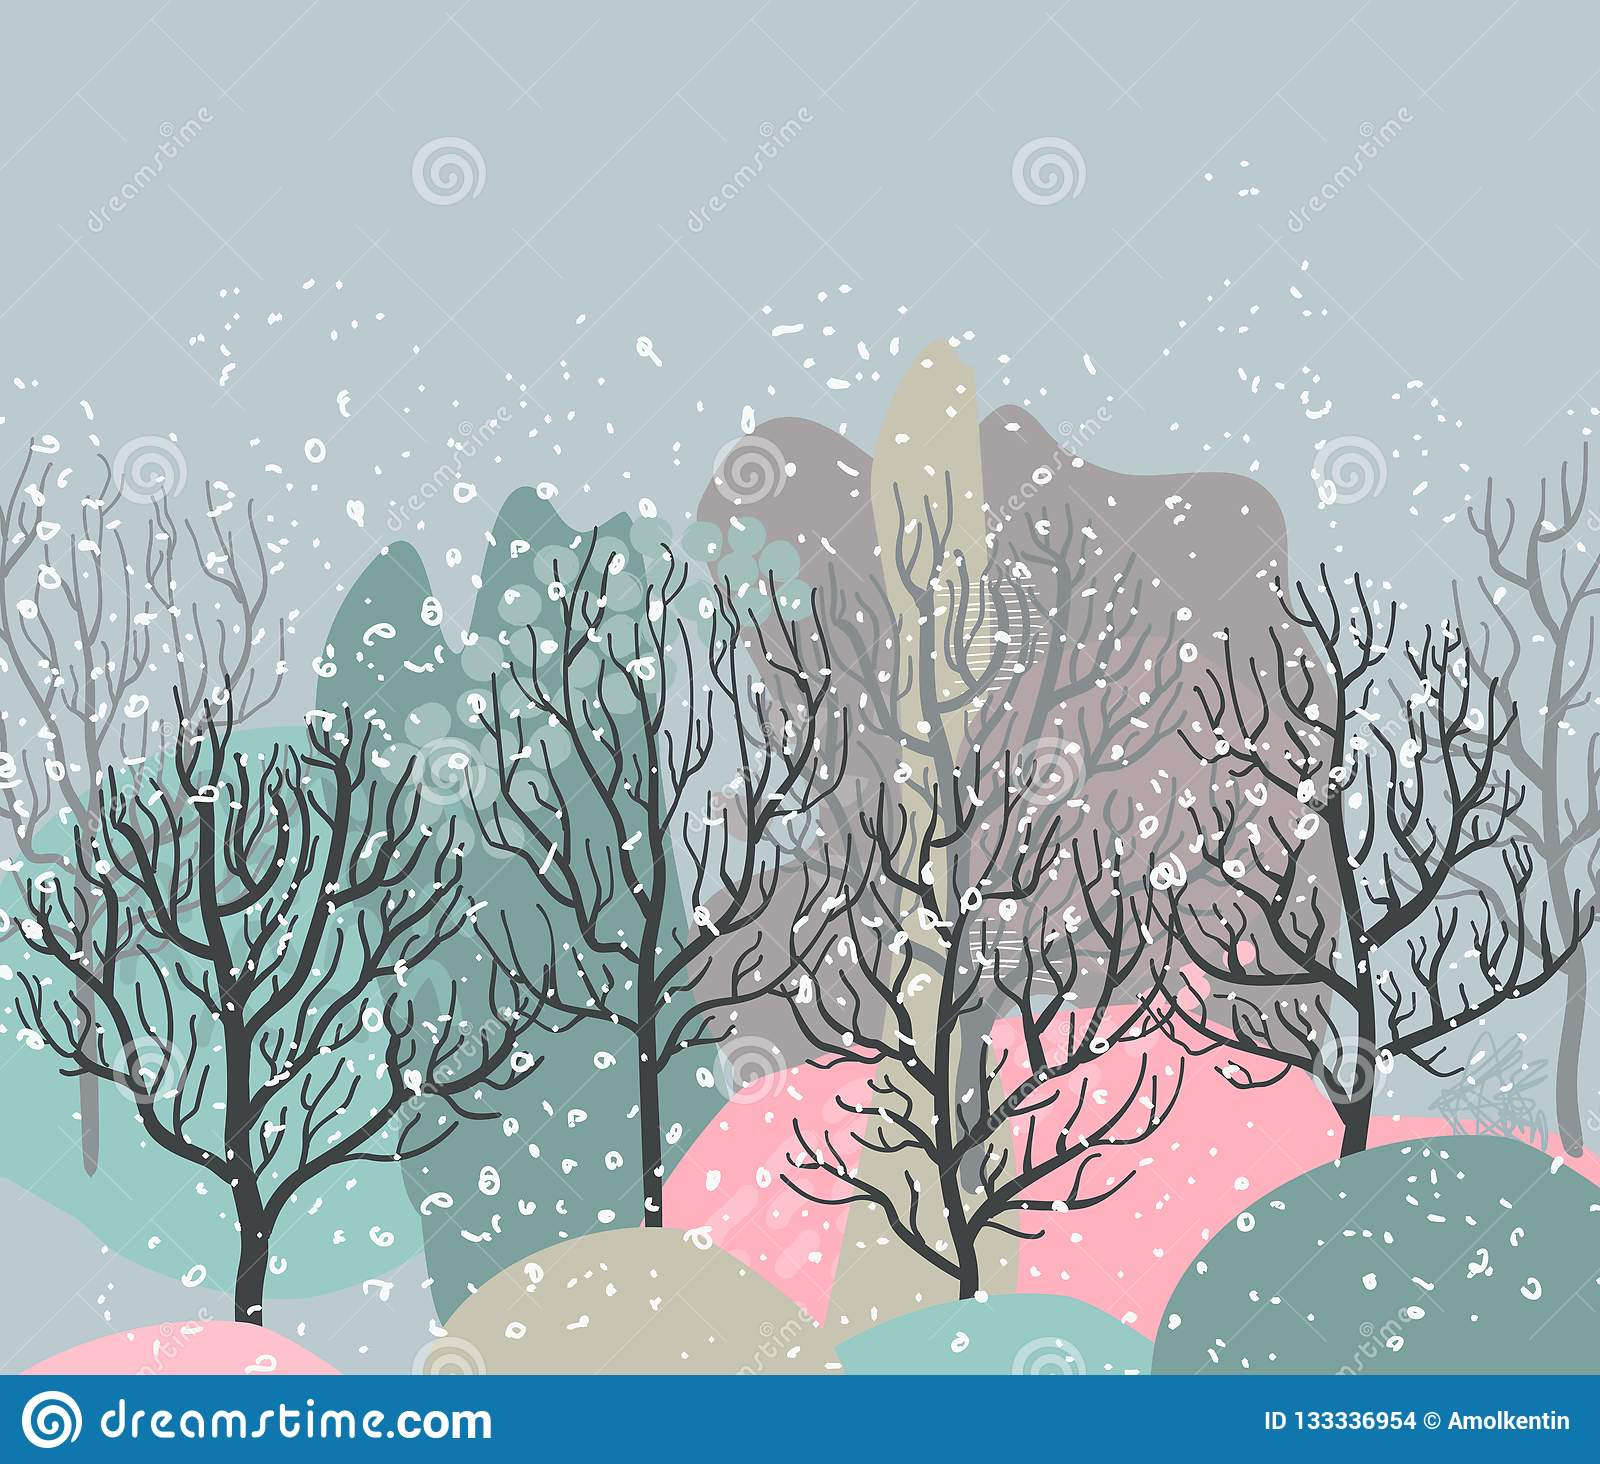 Vector illustration with winter forest, abstract texture